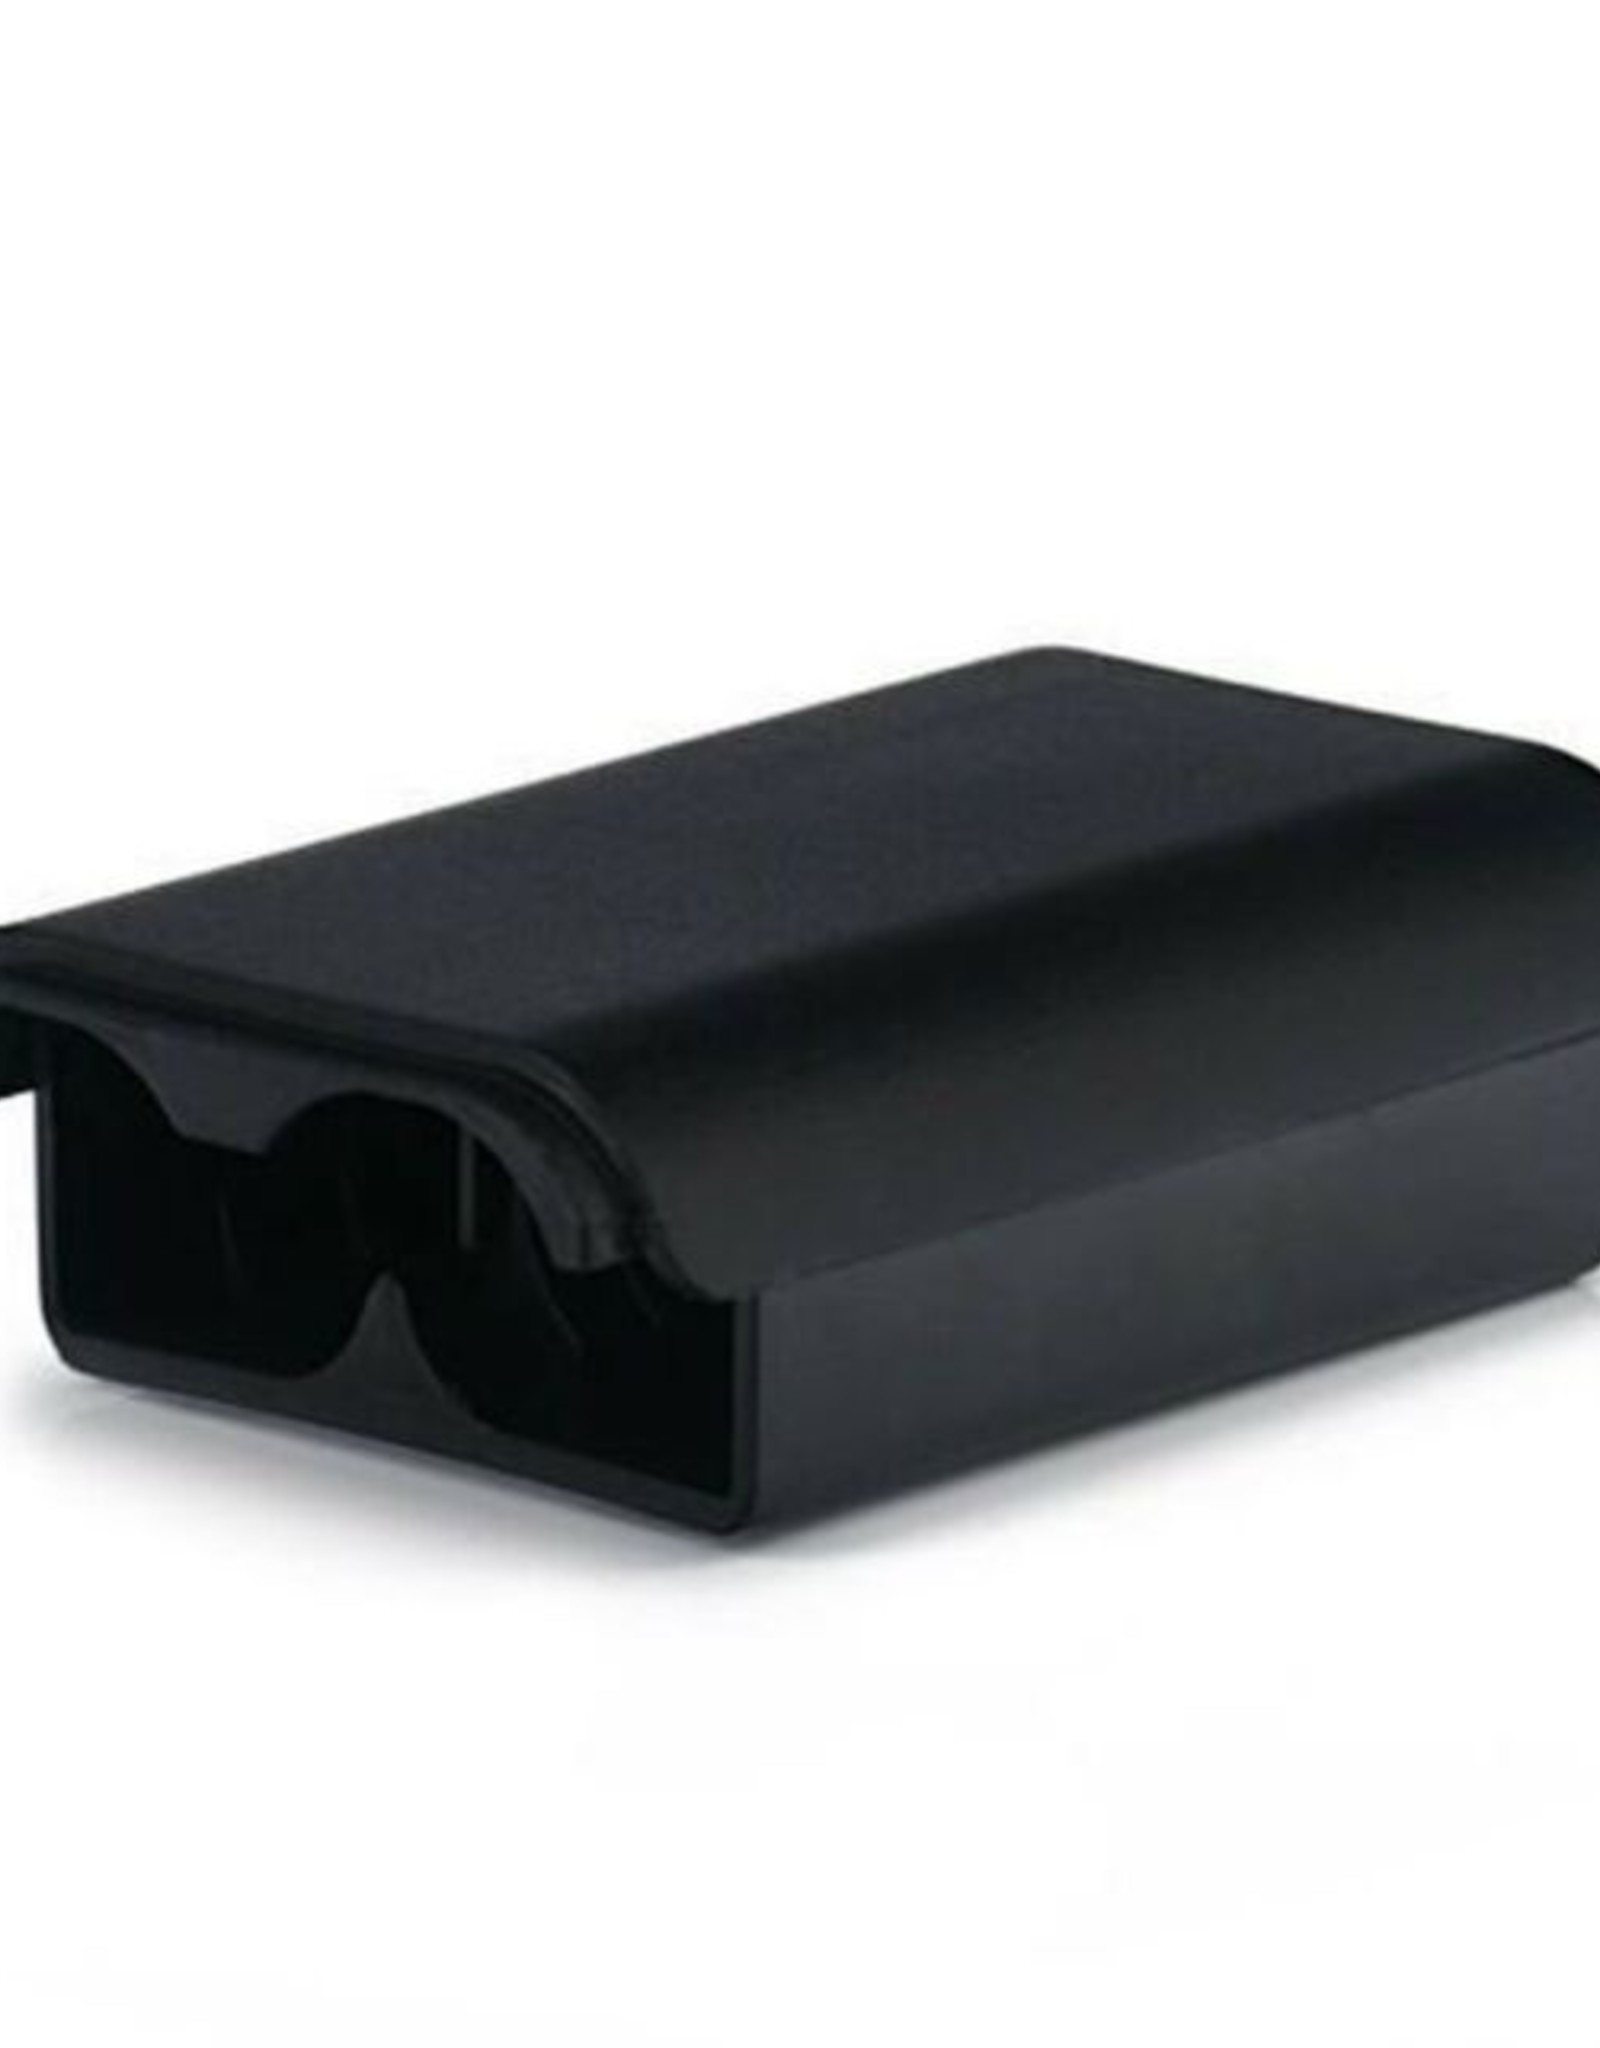 Xbox 360 360 Battery Cover (Black)